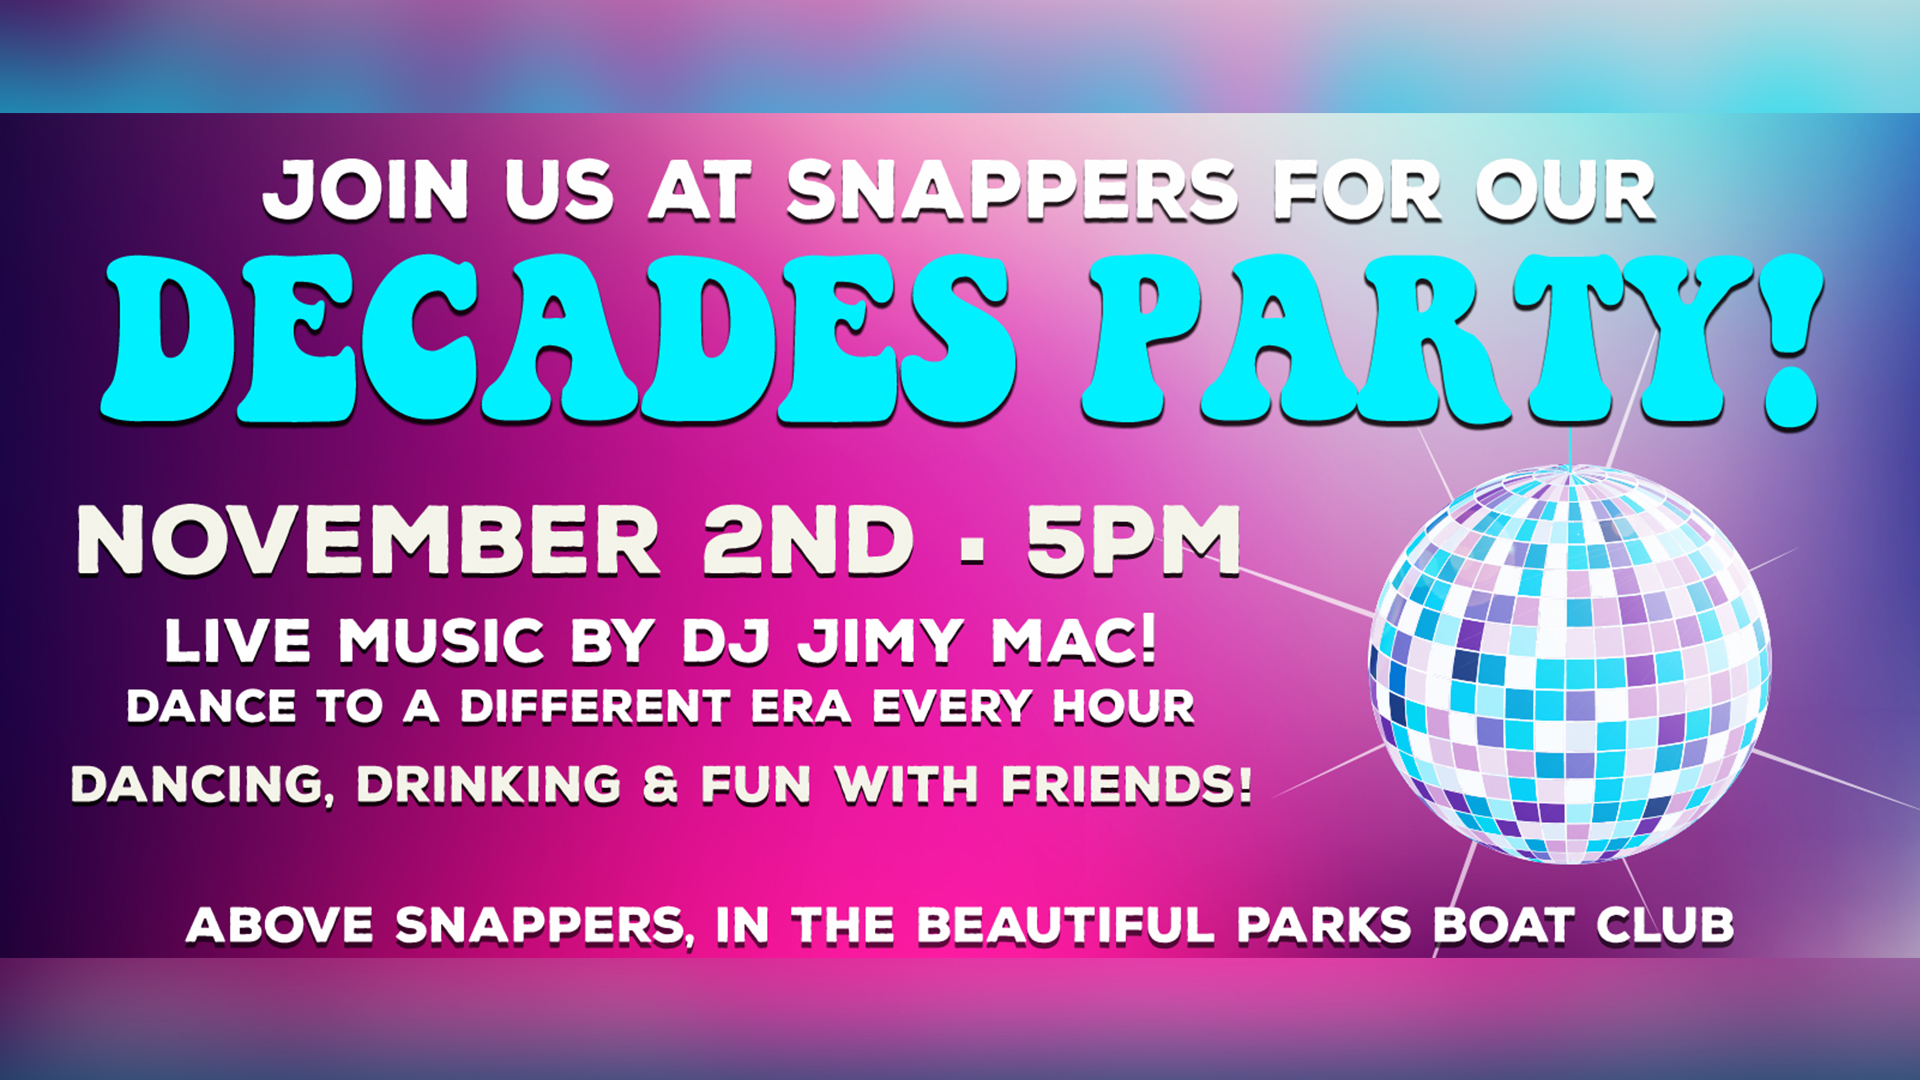 Decades Party at Snappers and Parks Boat Club